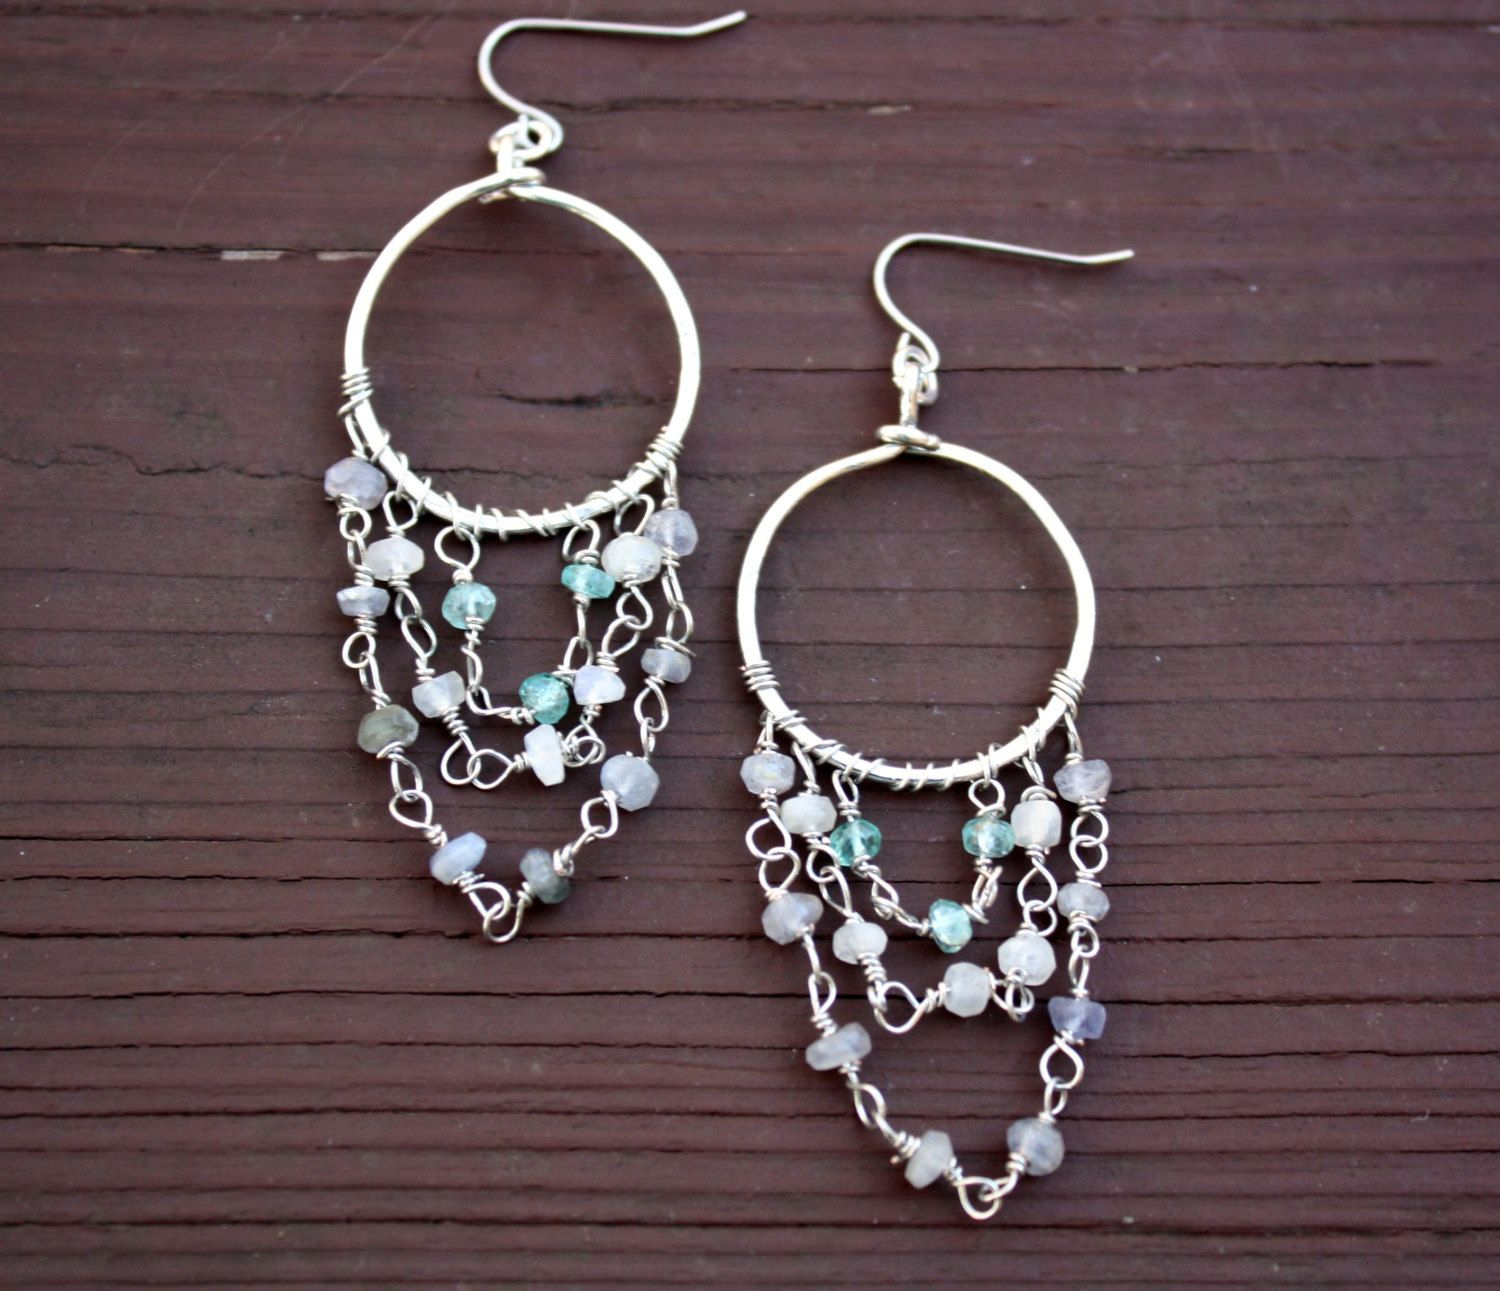 Juniper & Ponce: Chandelier Earrings with Moonstone and Quartz ...